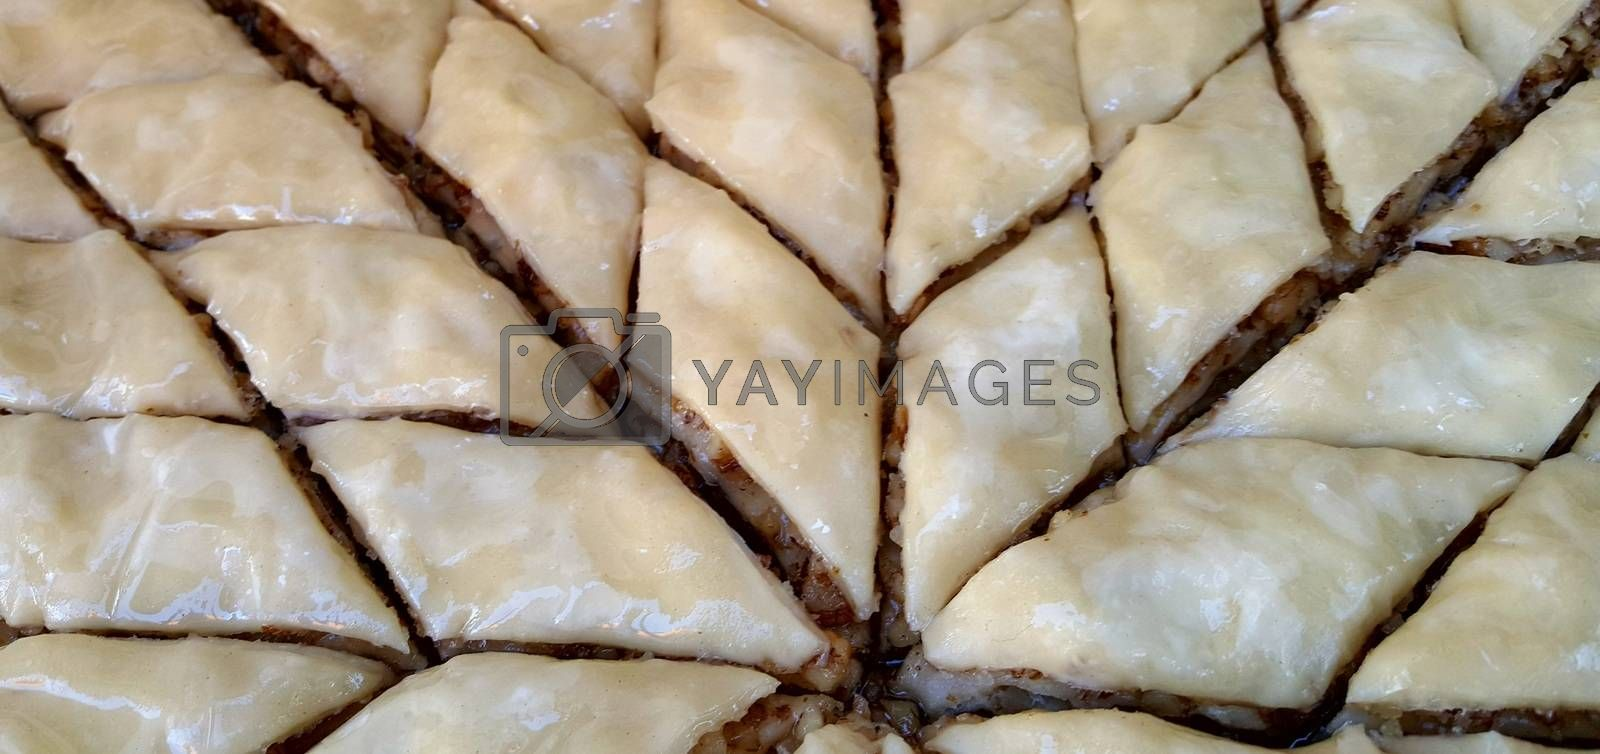 baklava turkish